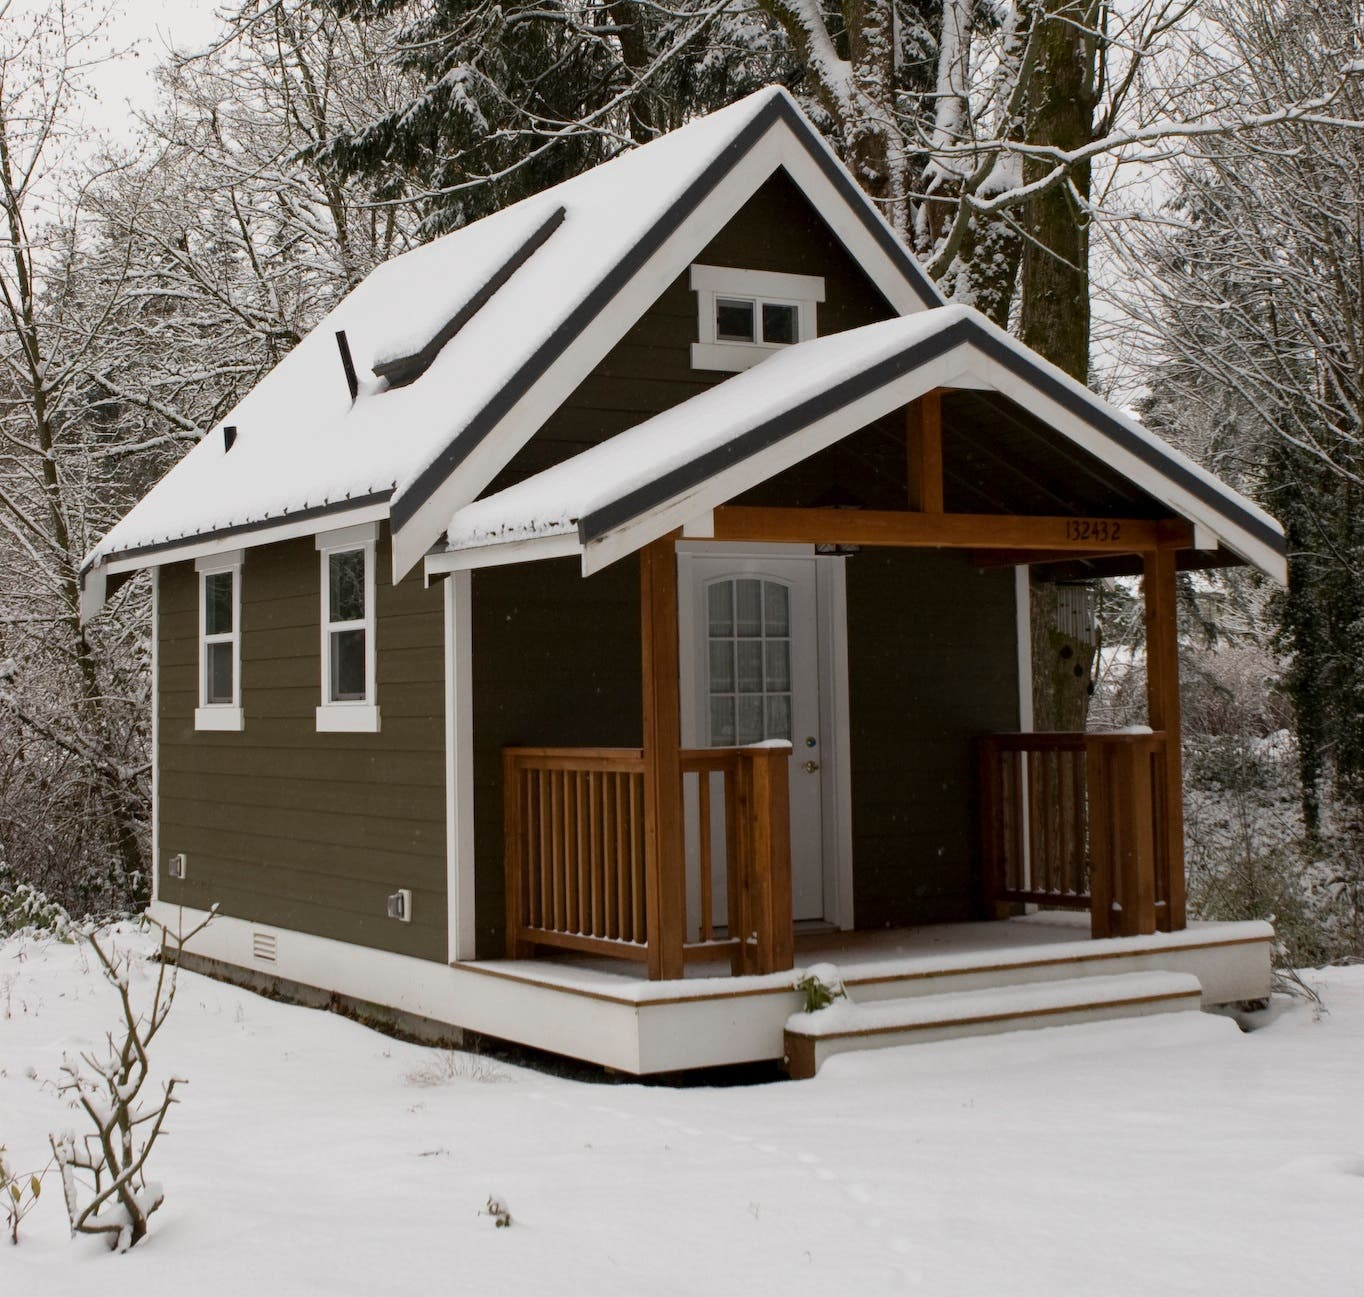 Tiny house articles Home building blog